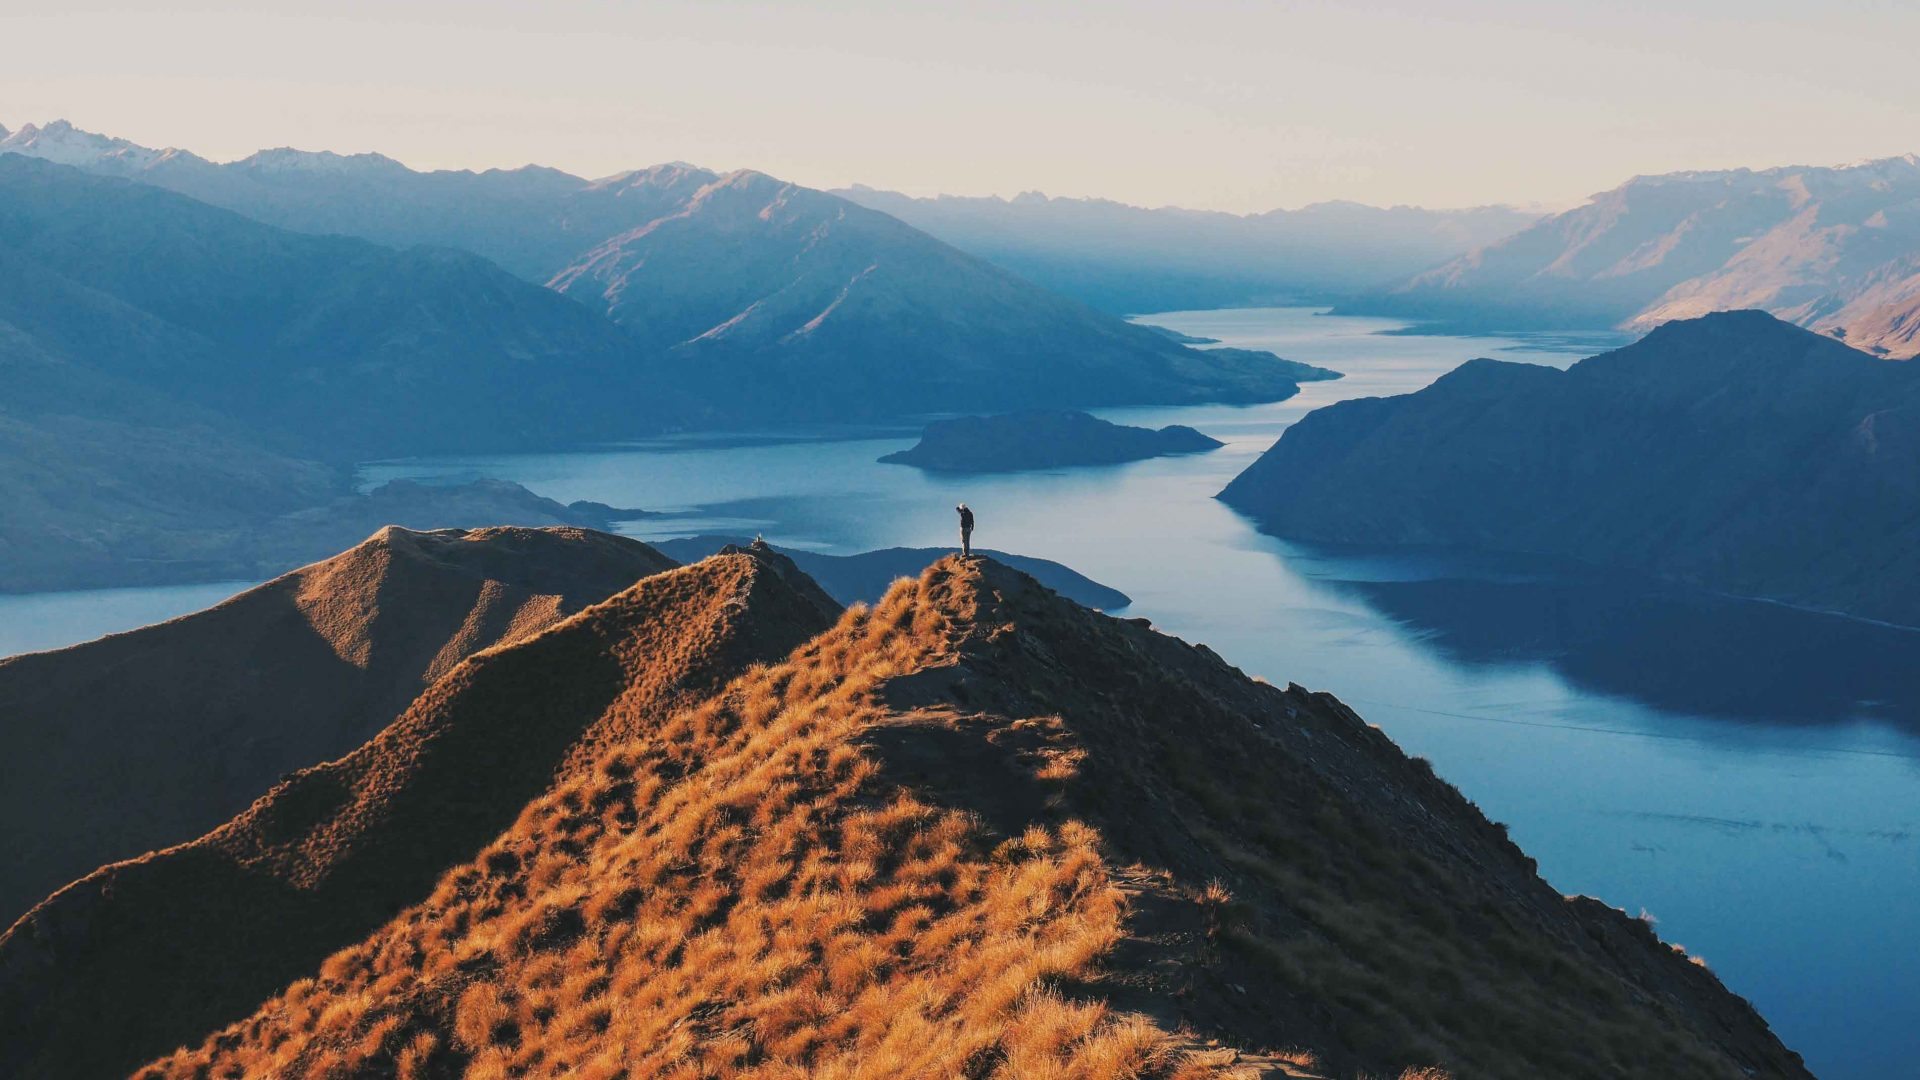 A view of Lake Wanaka from the summit of Roys Peak, New Zealand.